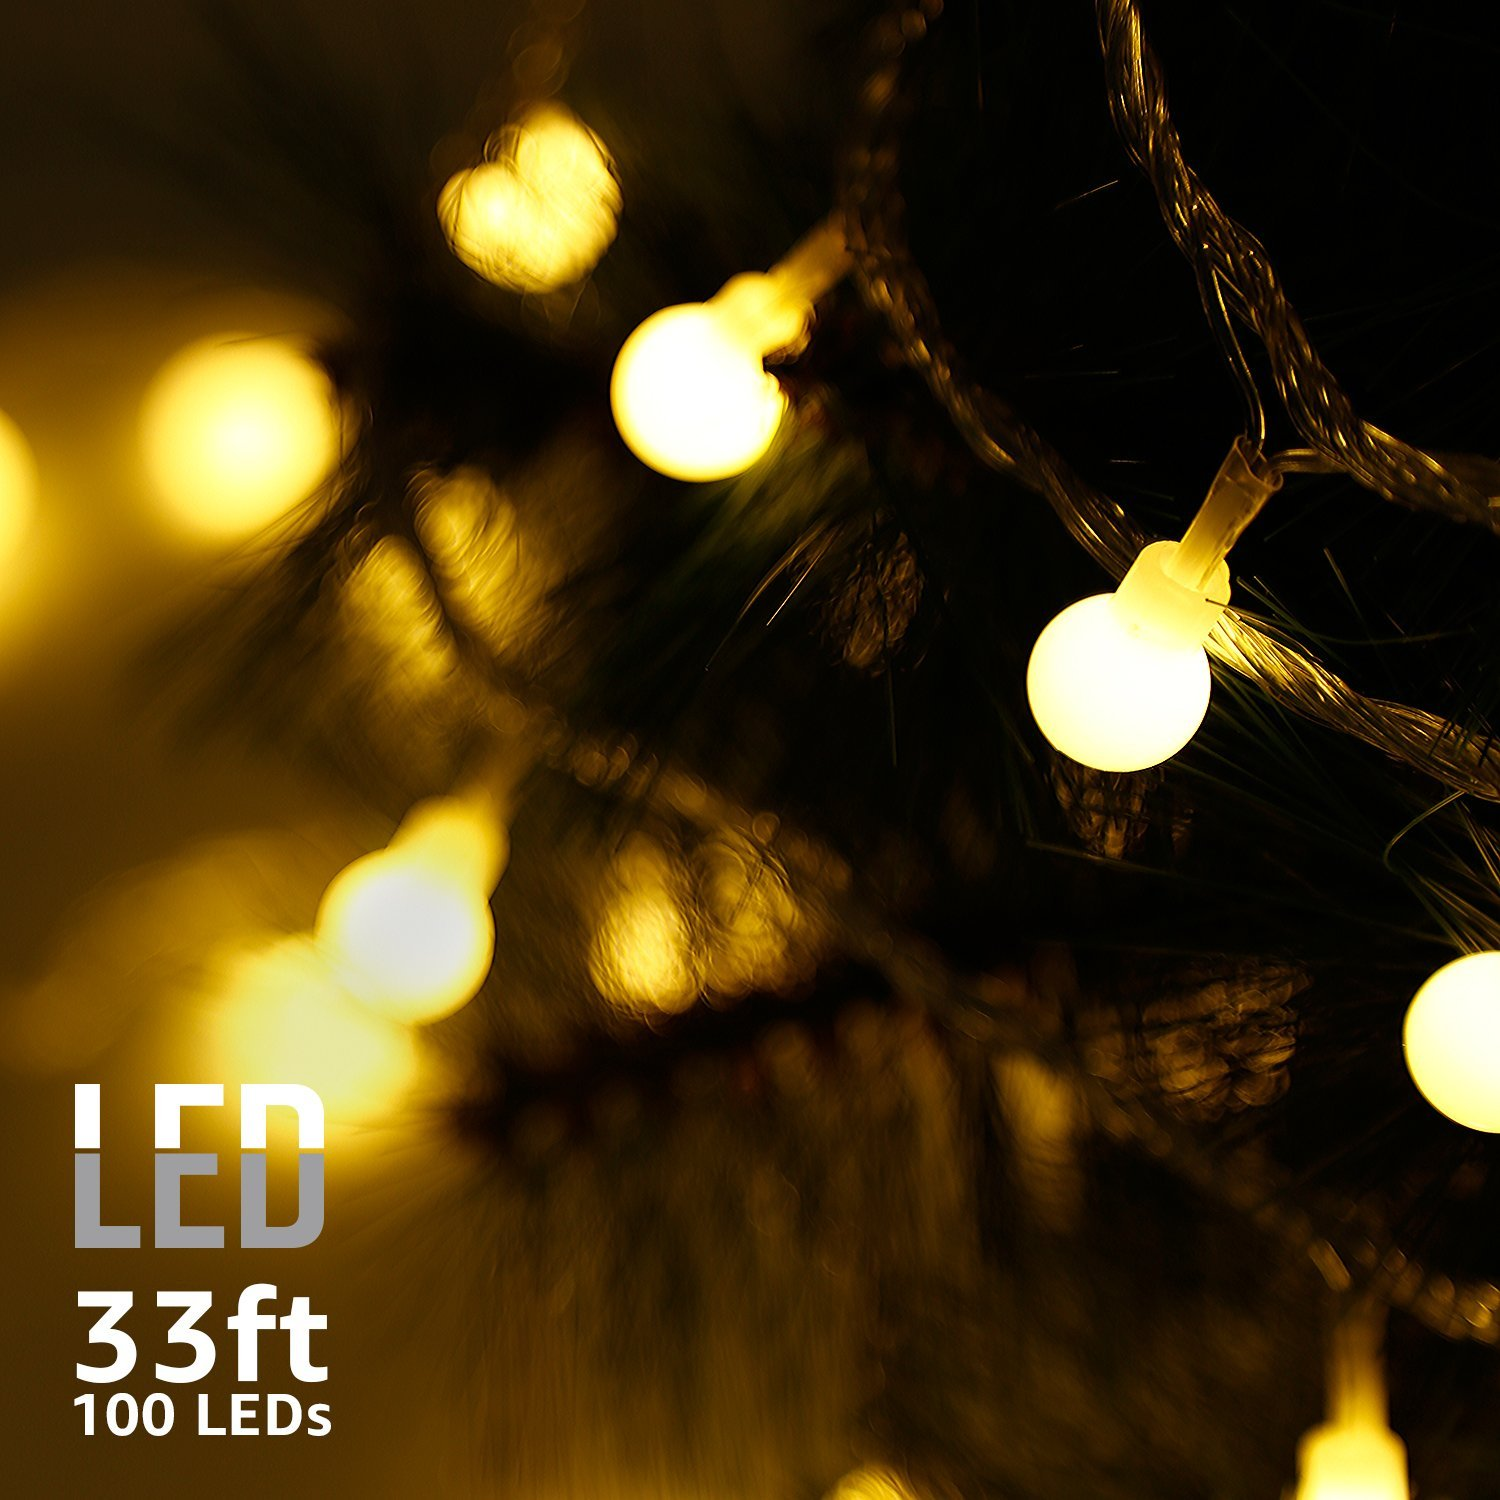 TORCHSTAR Globe String Lights, Waterproof Outdoor String Lights, Extendable Christmas Lights For Party, Garden, Patio Lights, Warm White